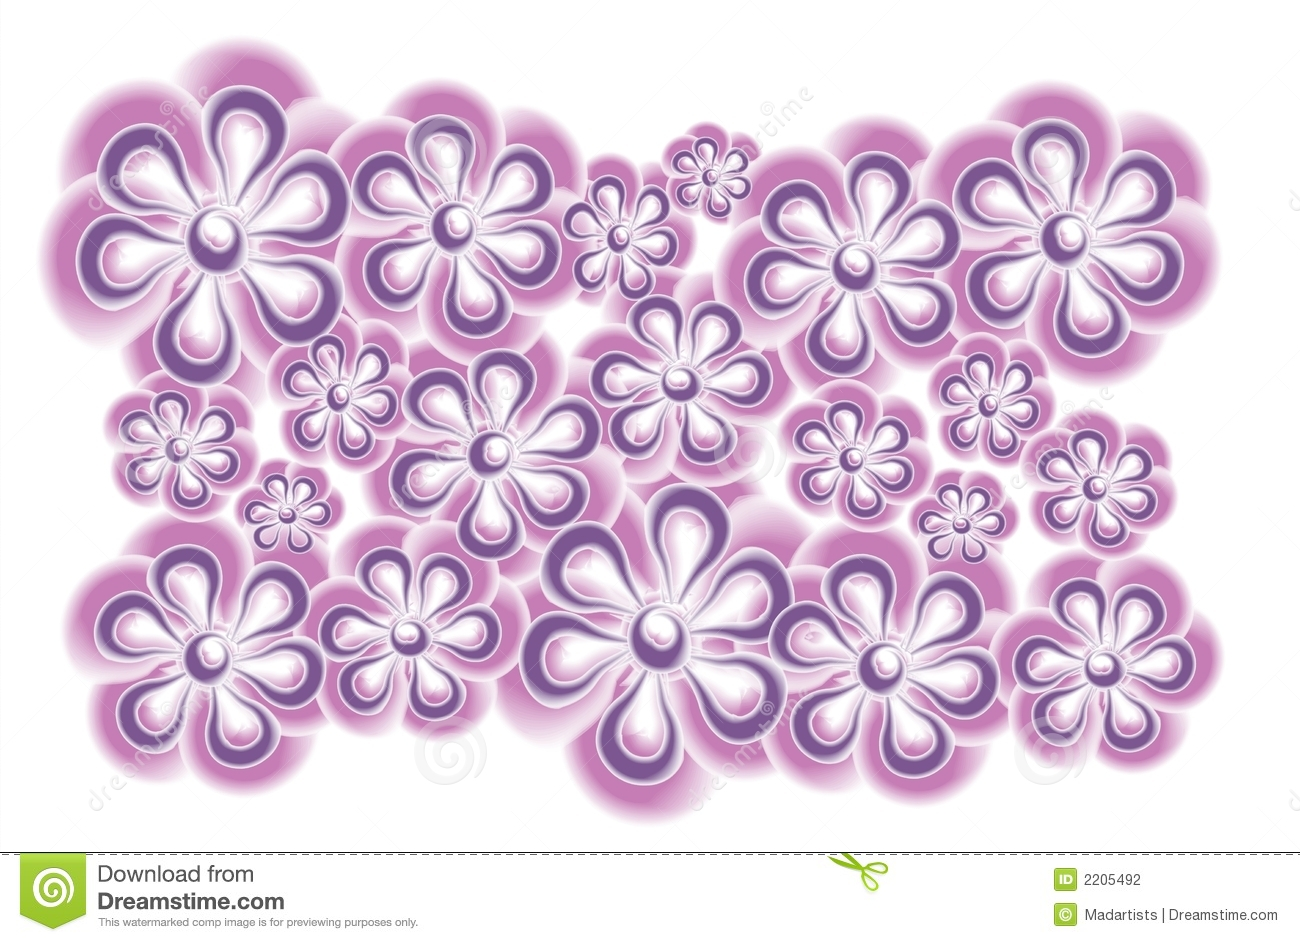 Purple flowers clip art vector freeuse download Purple Flowers Clip Art Stock Image - Image: 6167891 vector freeuse download